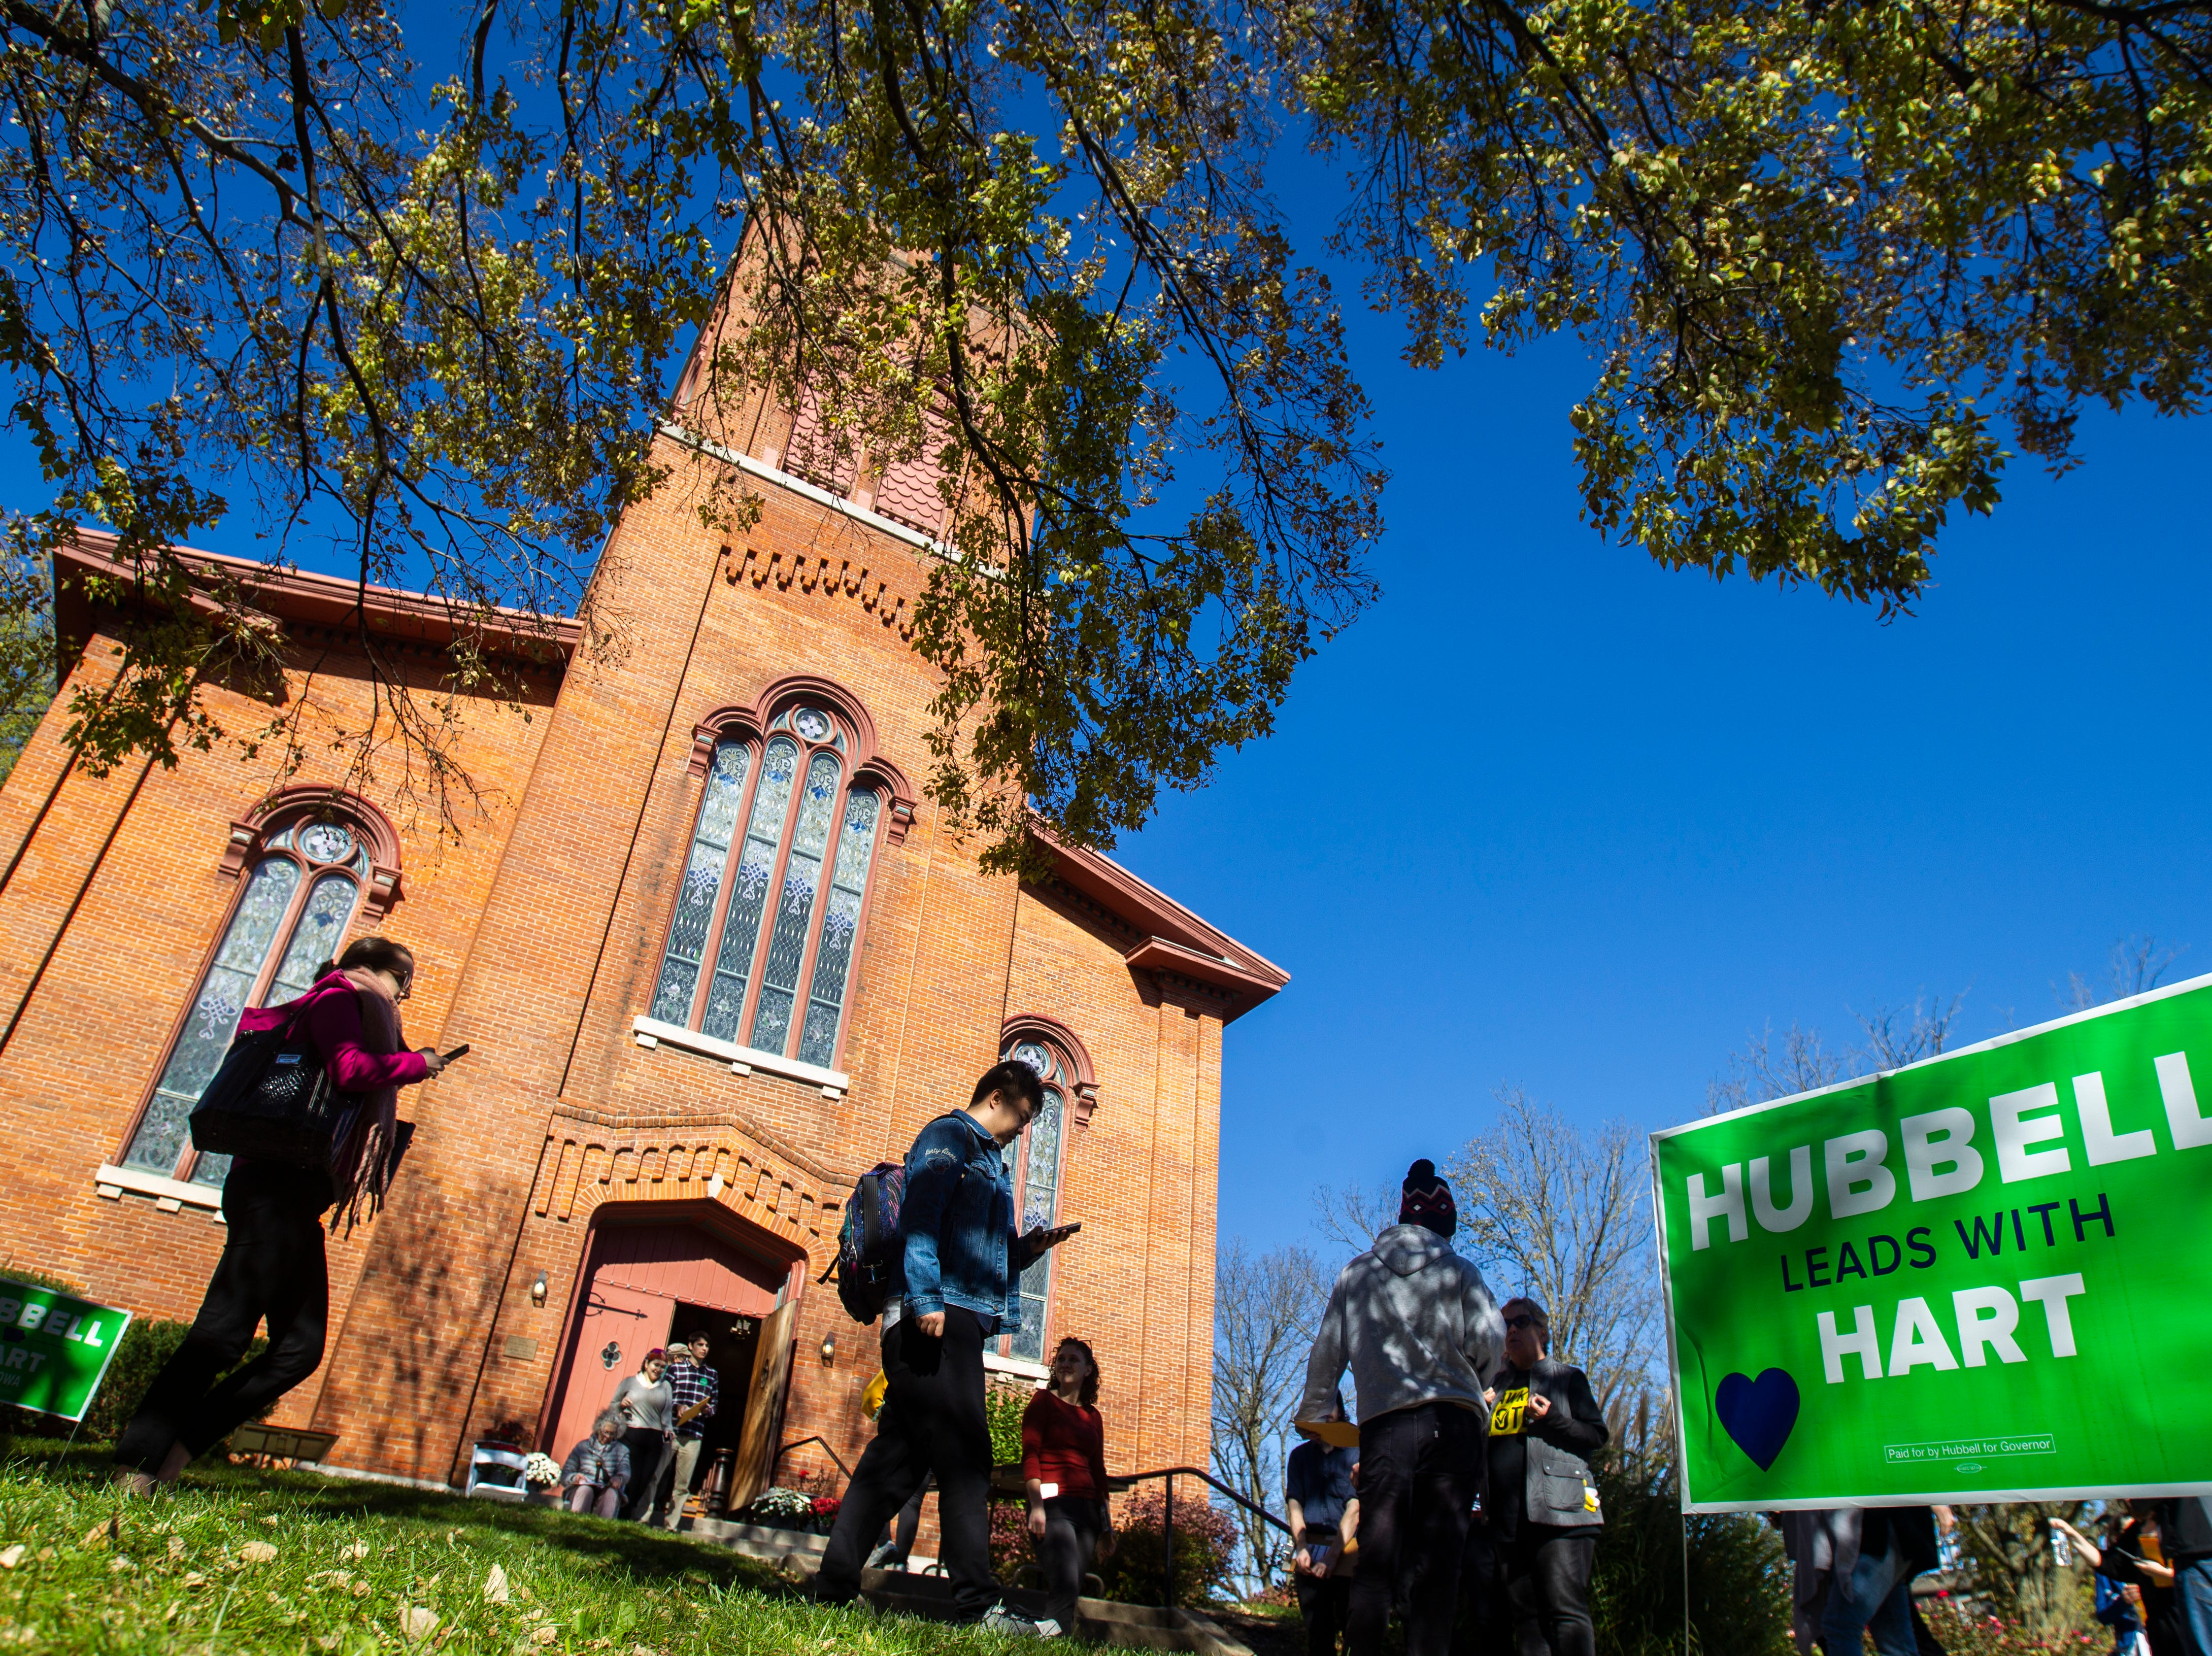 """Fred Hubbell yard signs reading """"Hubbell leads with Hart,"""" line the sidewalk while people make their way towards a """"All Hands on Deck"""" event on Tuesday, Oct. 23, 2018, at Old Brick in Iowa City."""